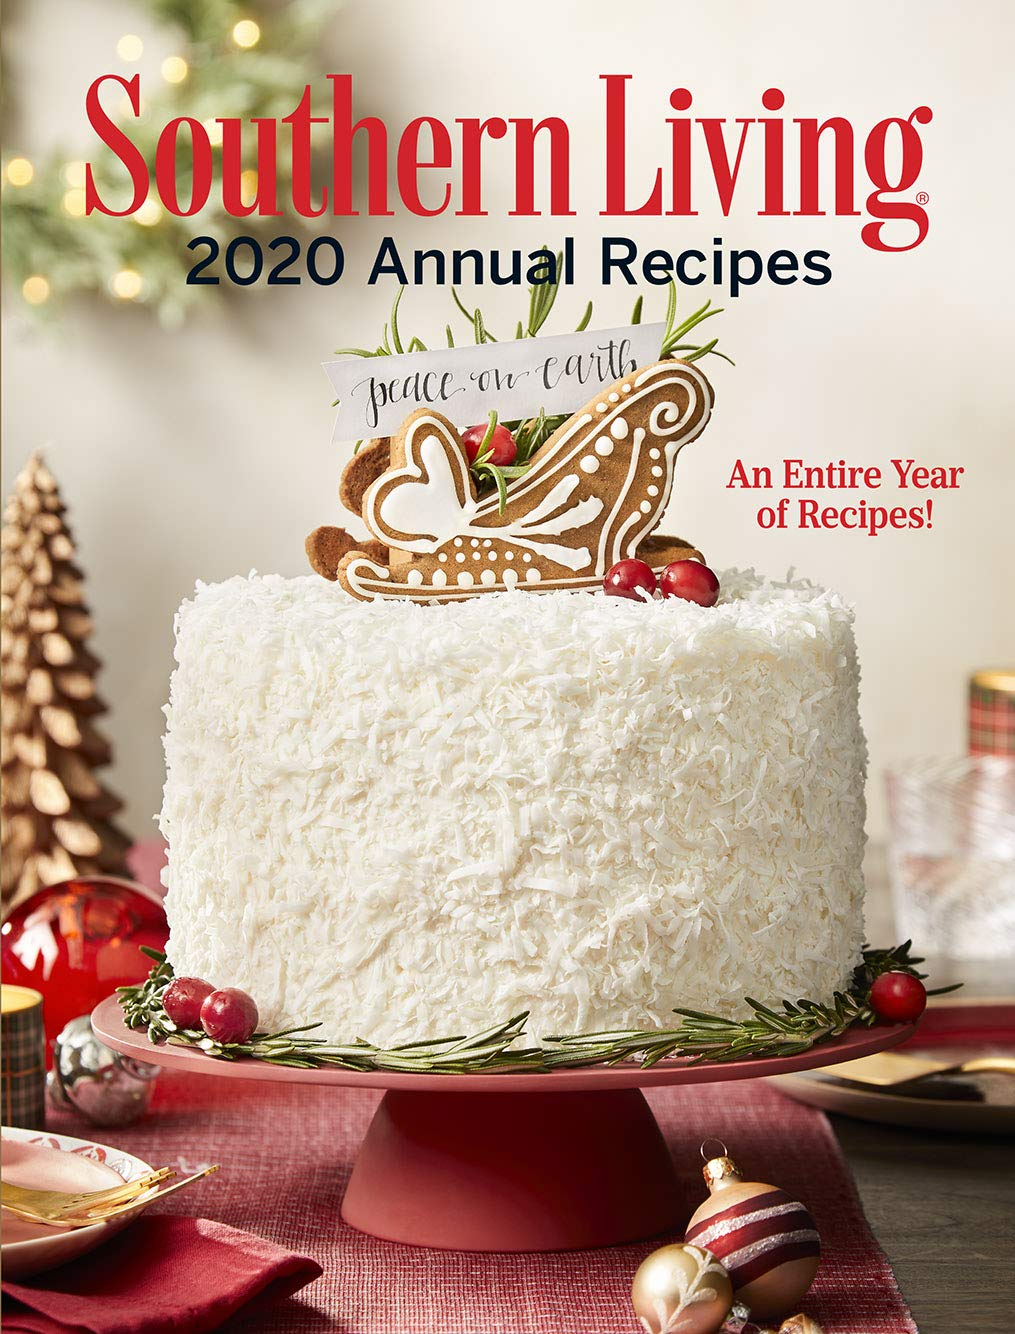 Southern Living 2021 Southern Living® Christmas Cookbook Southern Living 2020 Annual Recipes An Entire Year Of Recipes Southern Living Annual Recipes Editors Of Southern Living 9781419750618 Amazon Com Books